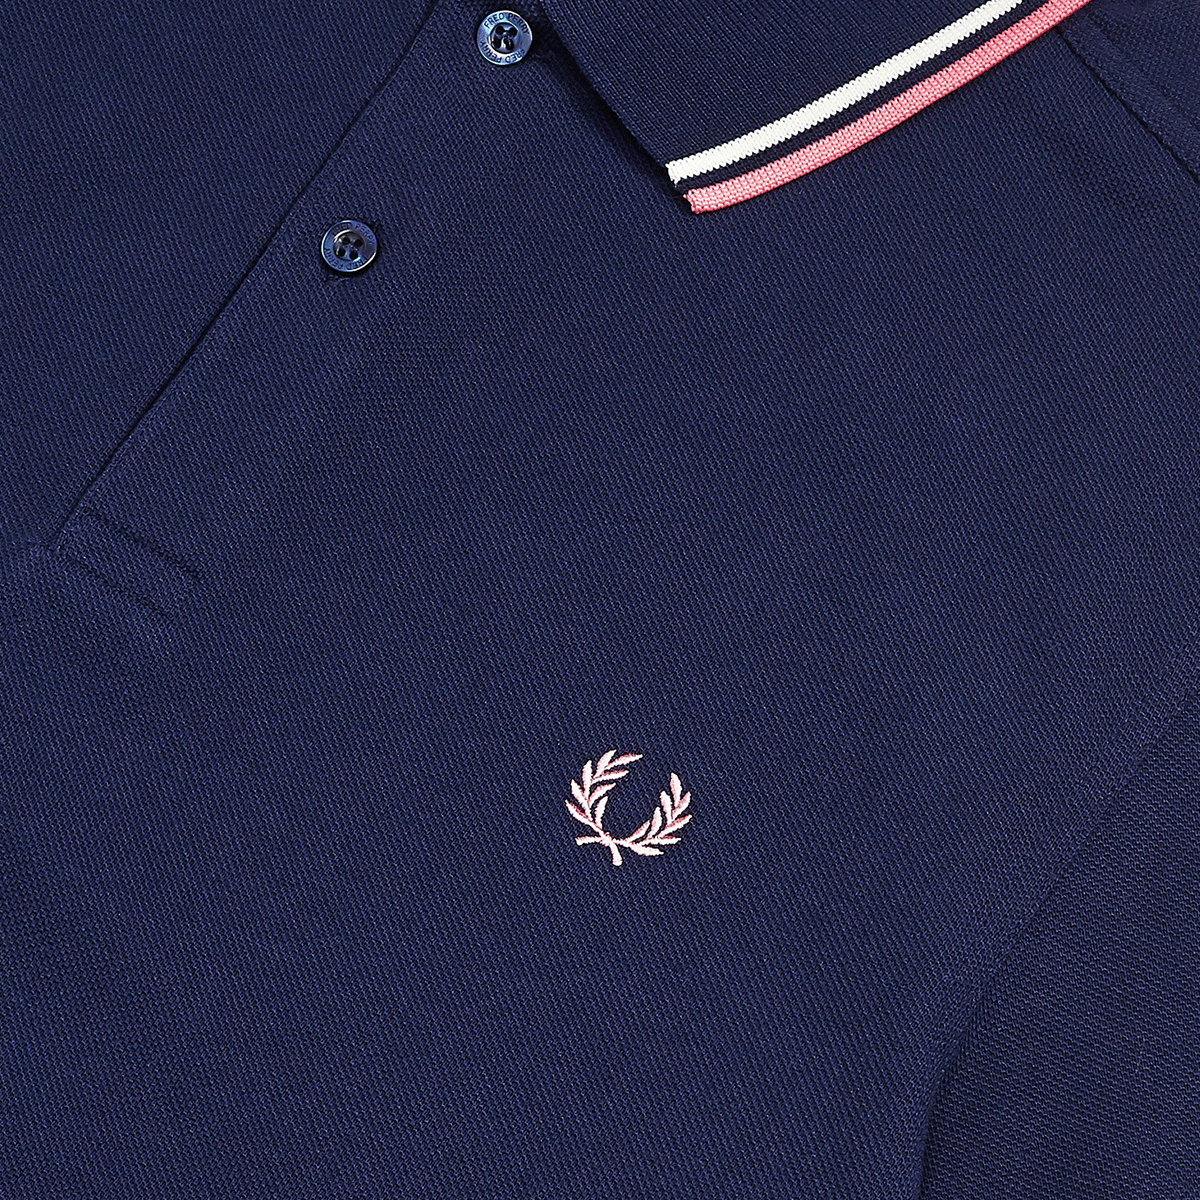 Fred Perry Polo Navy, White & Pink M3600